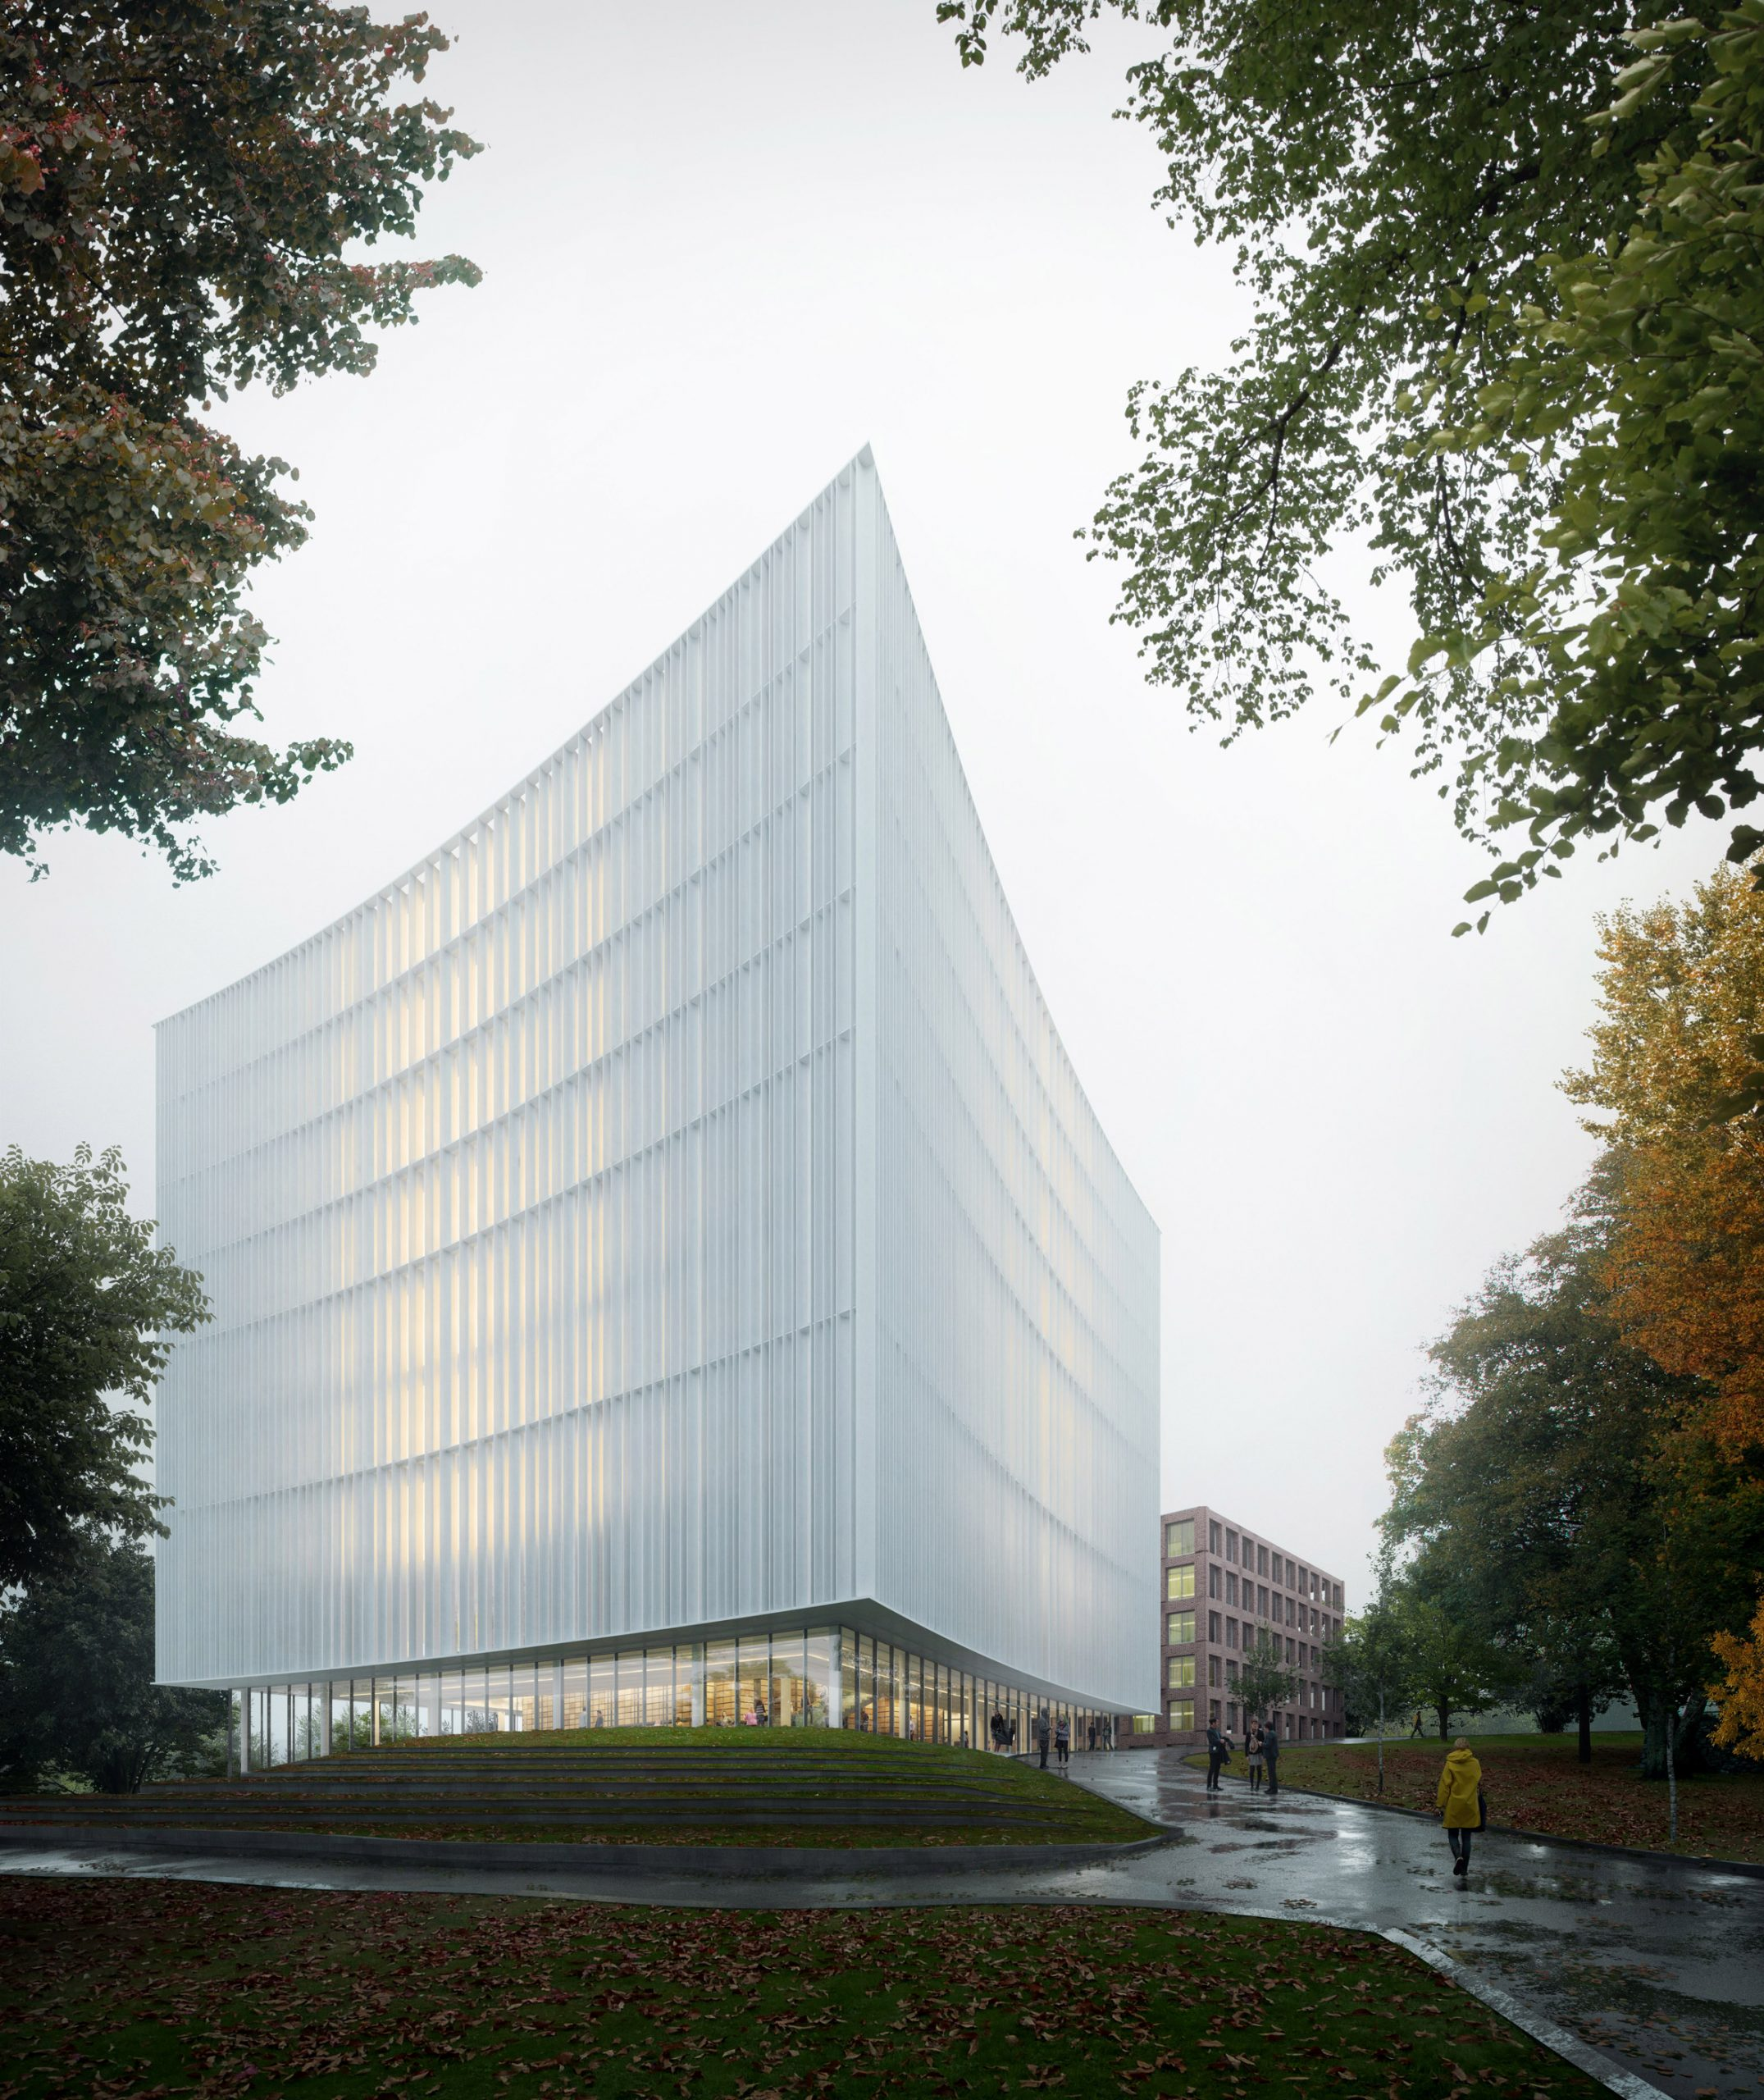 Exterior for new Gothenburg University library designed by Cobe